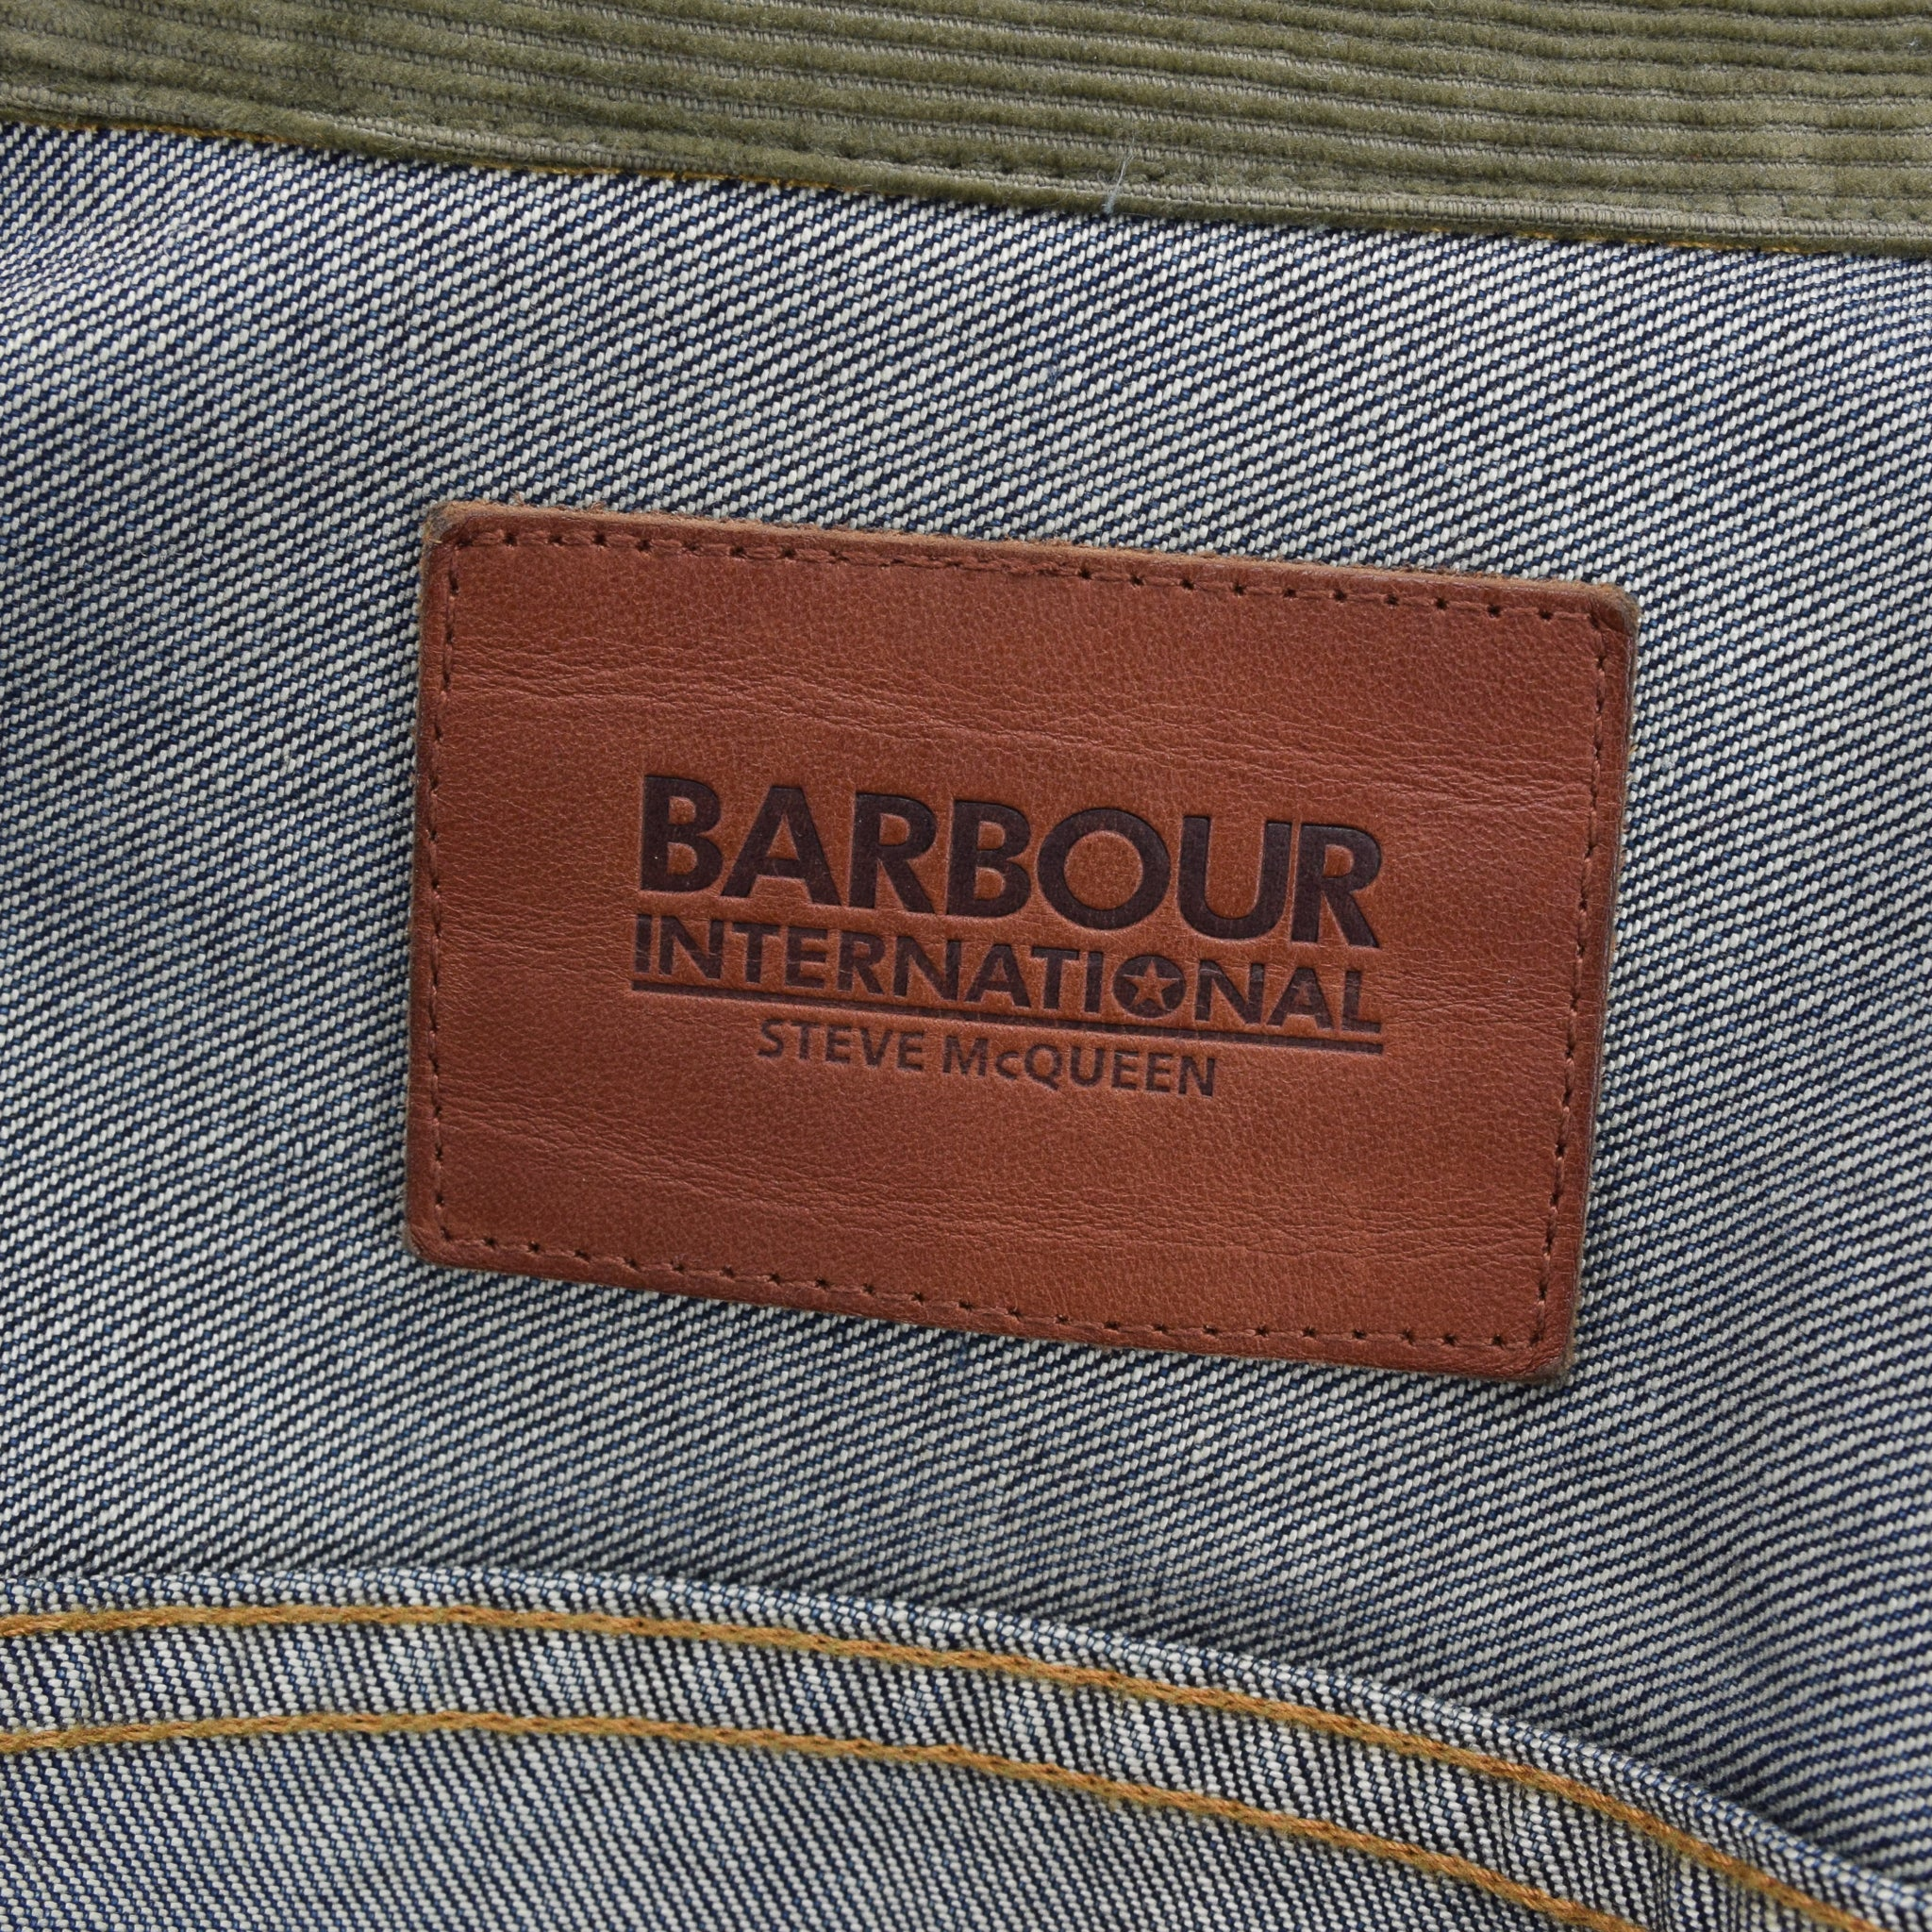 Barbour International Steve McQueen Type 2 Style Slim Fit Selvedge Denim Jacket S label